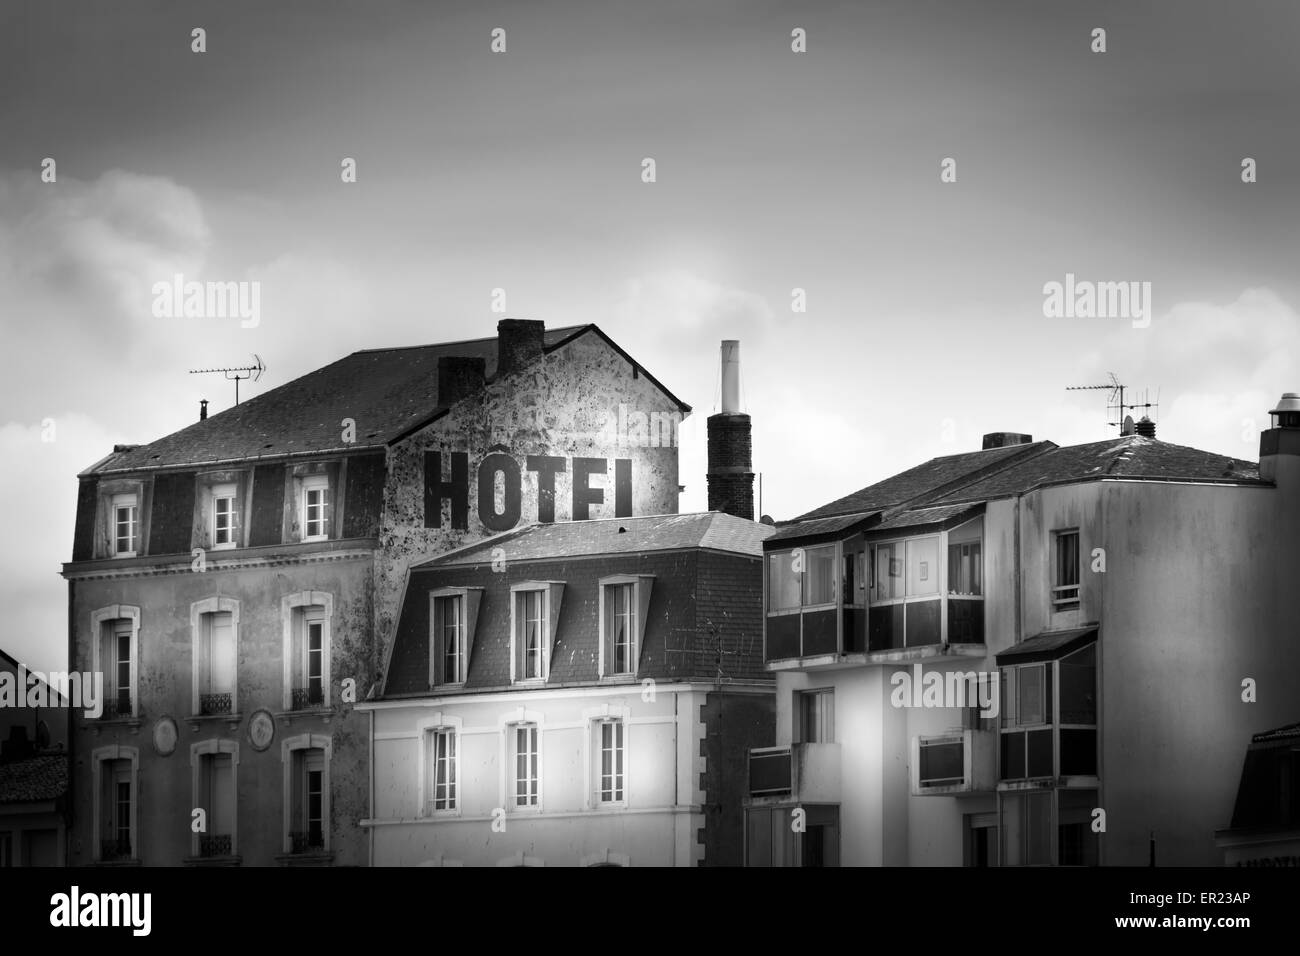 building exterior hotel facade old black and white - Stock Image